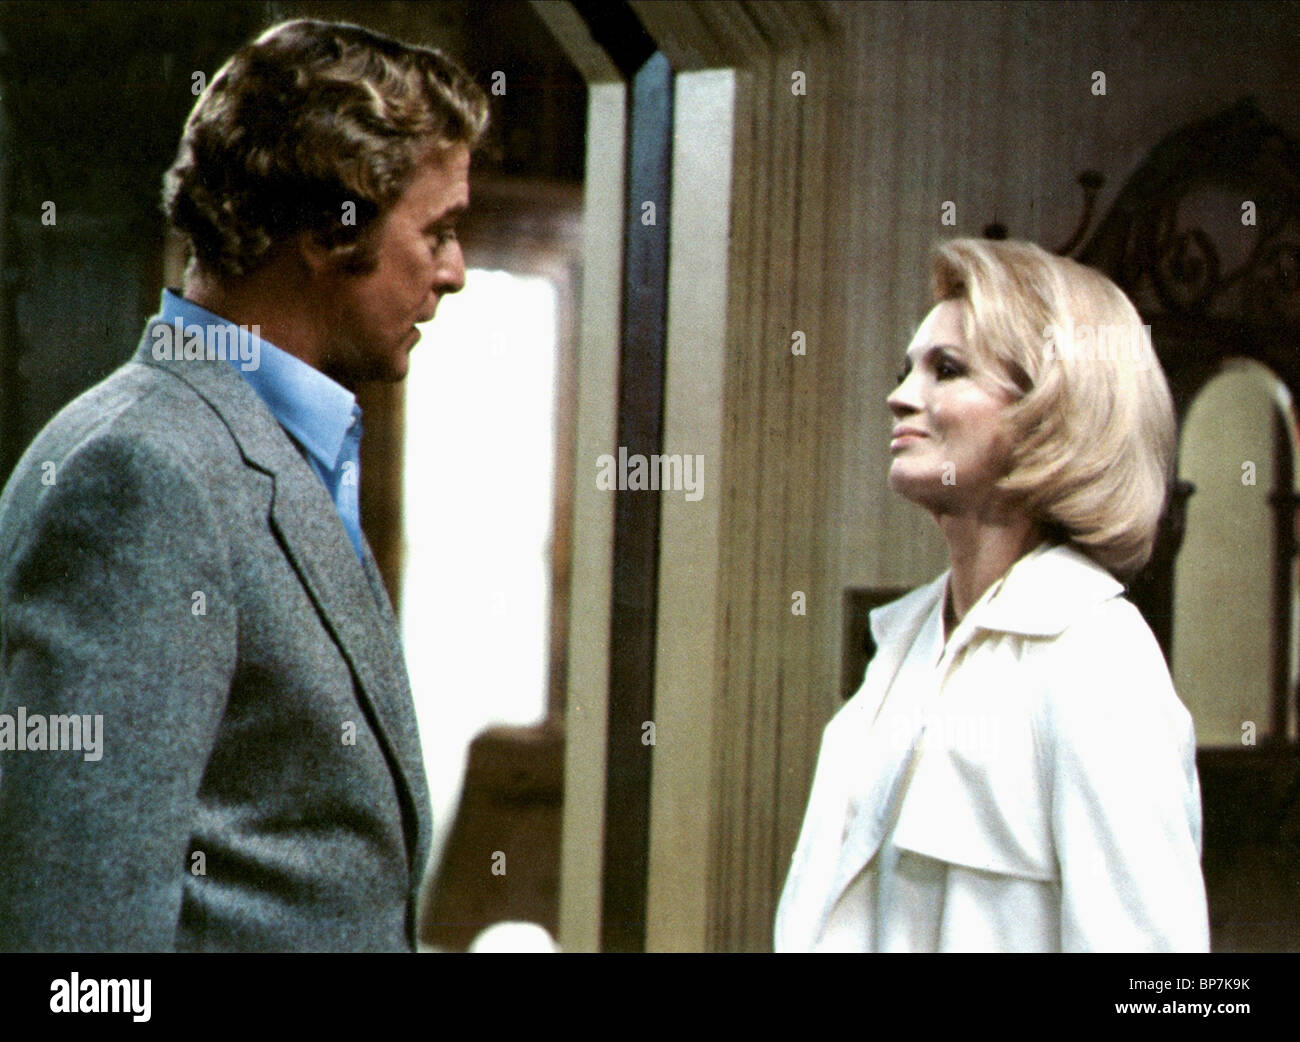 MICHAEL CAINE, ANGIE DICKINSON, DRESSED TO KILL, 1980 - Stock Image